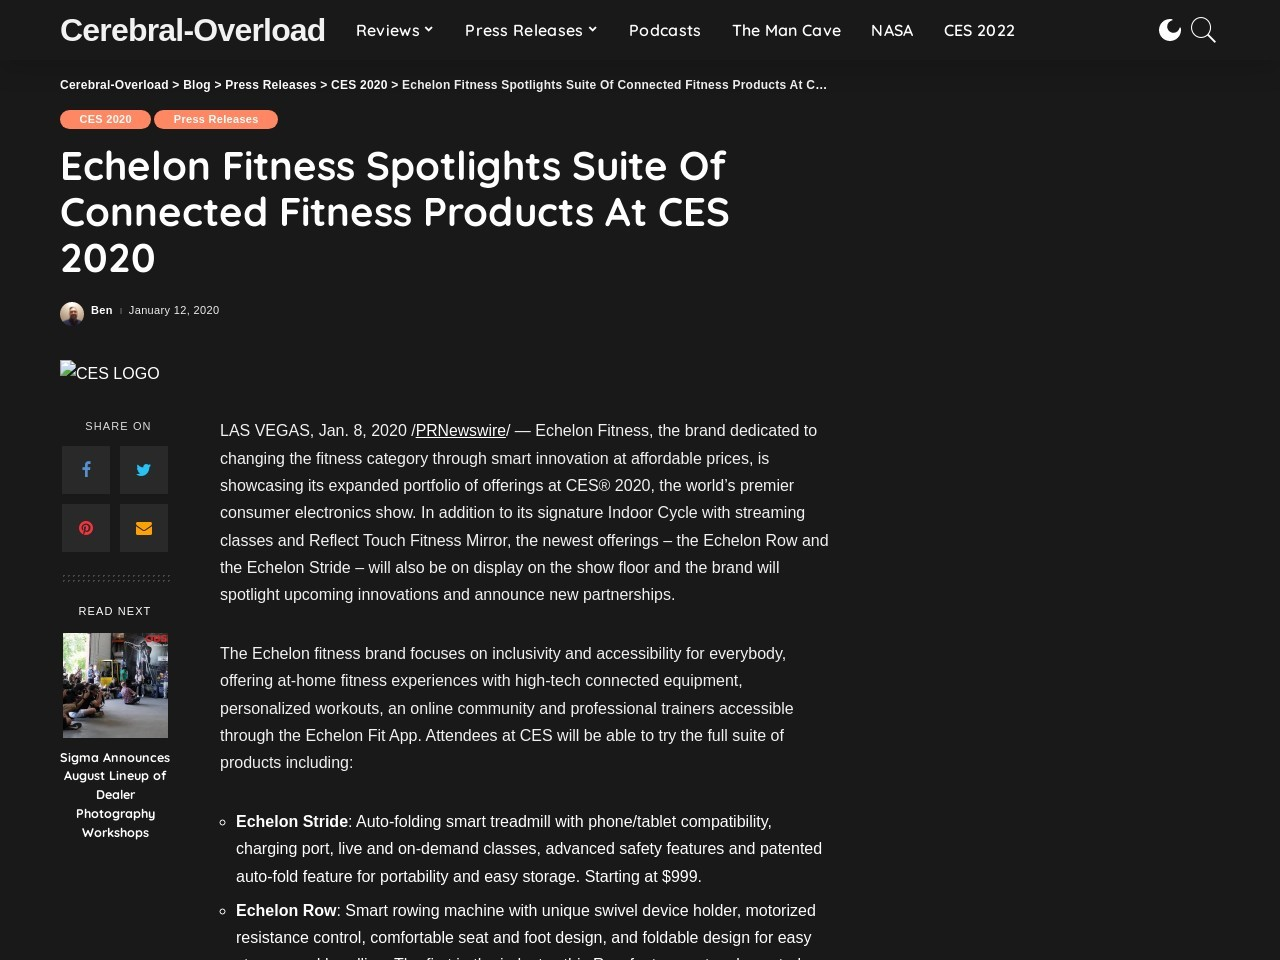 Echelon Fitness Spotlights Suite Of Connected Fitness Products At CES 2020